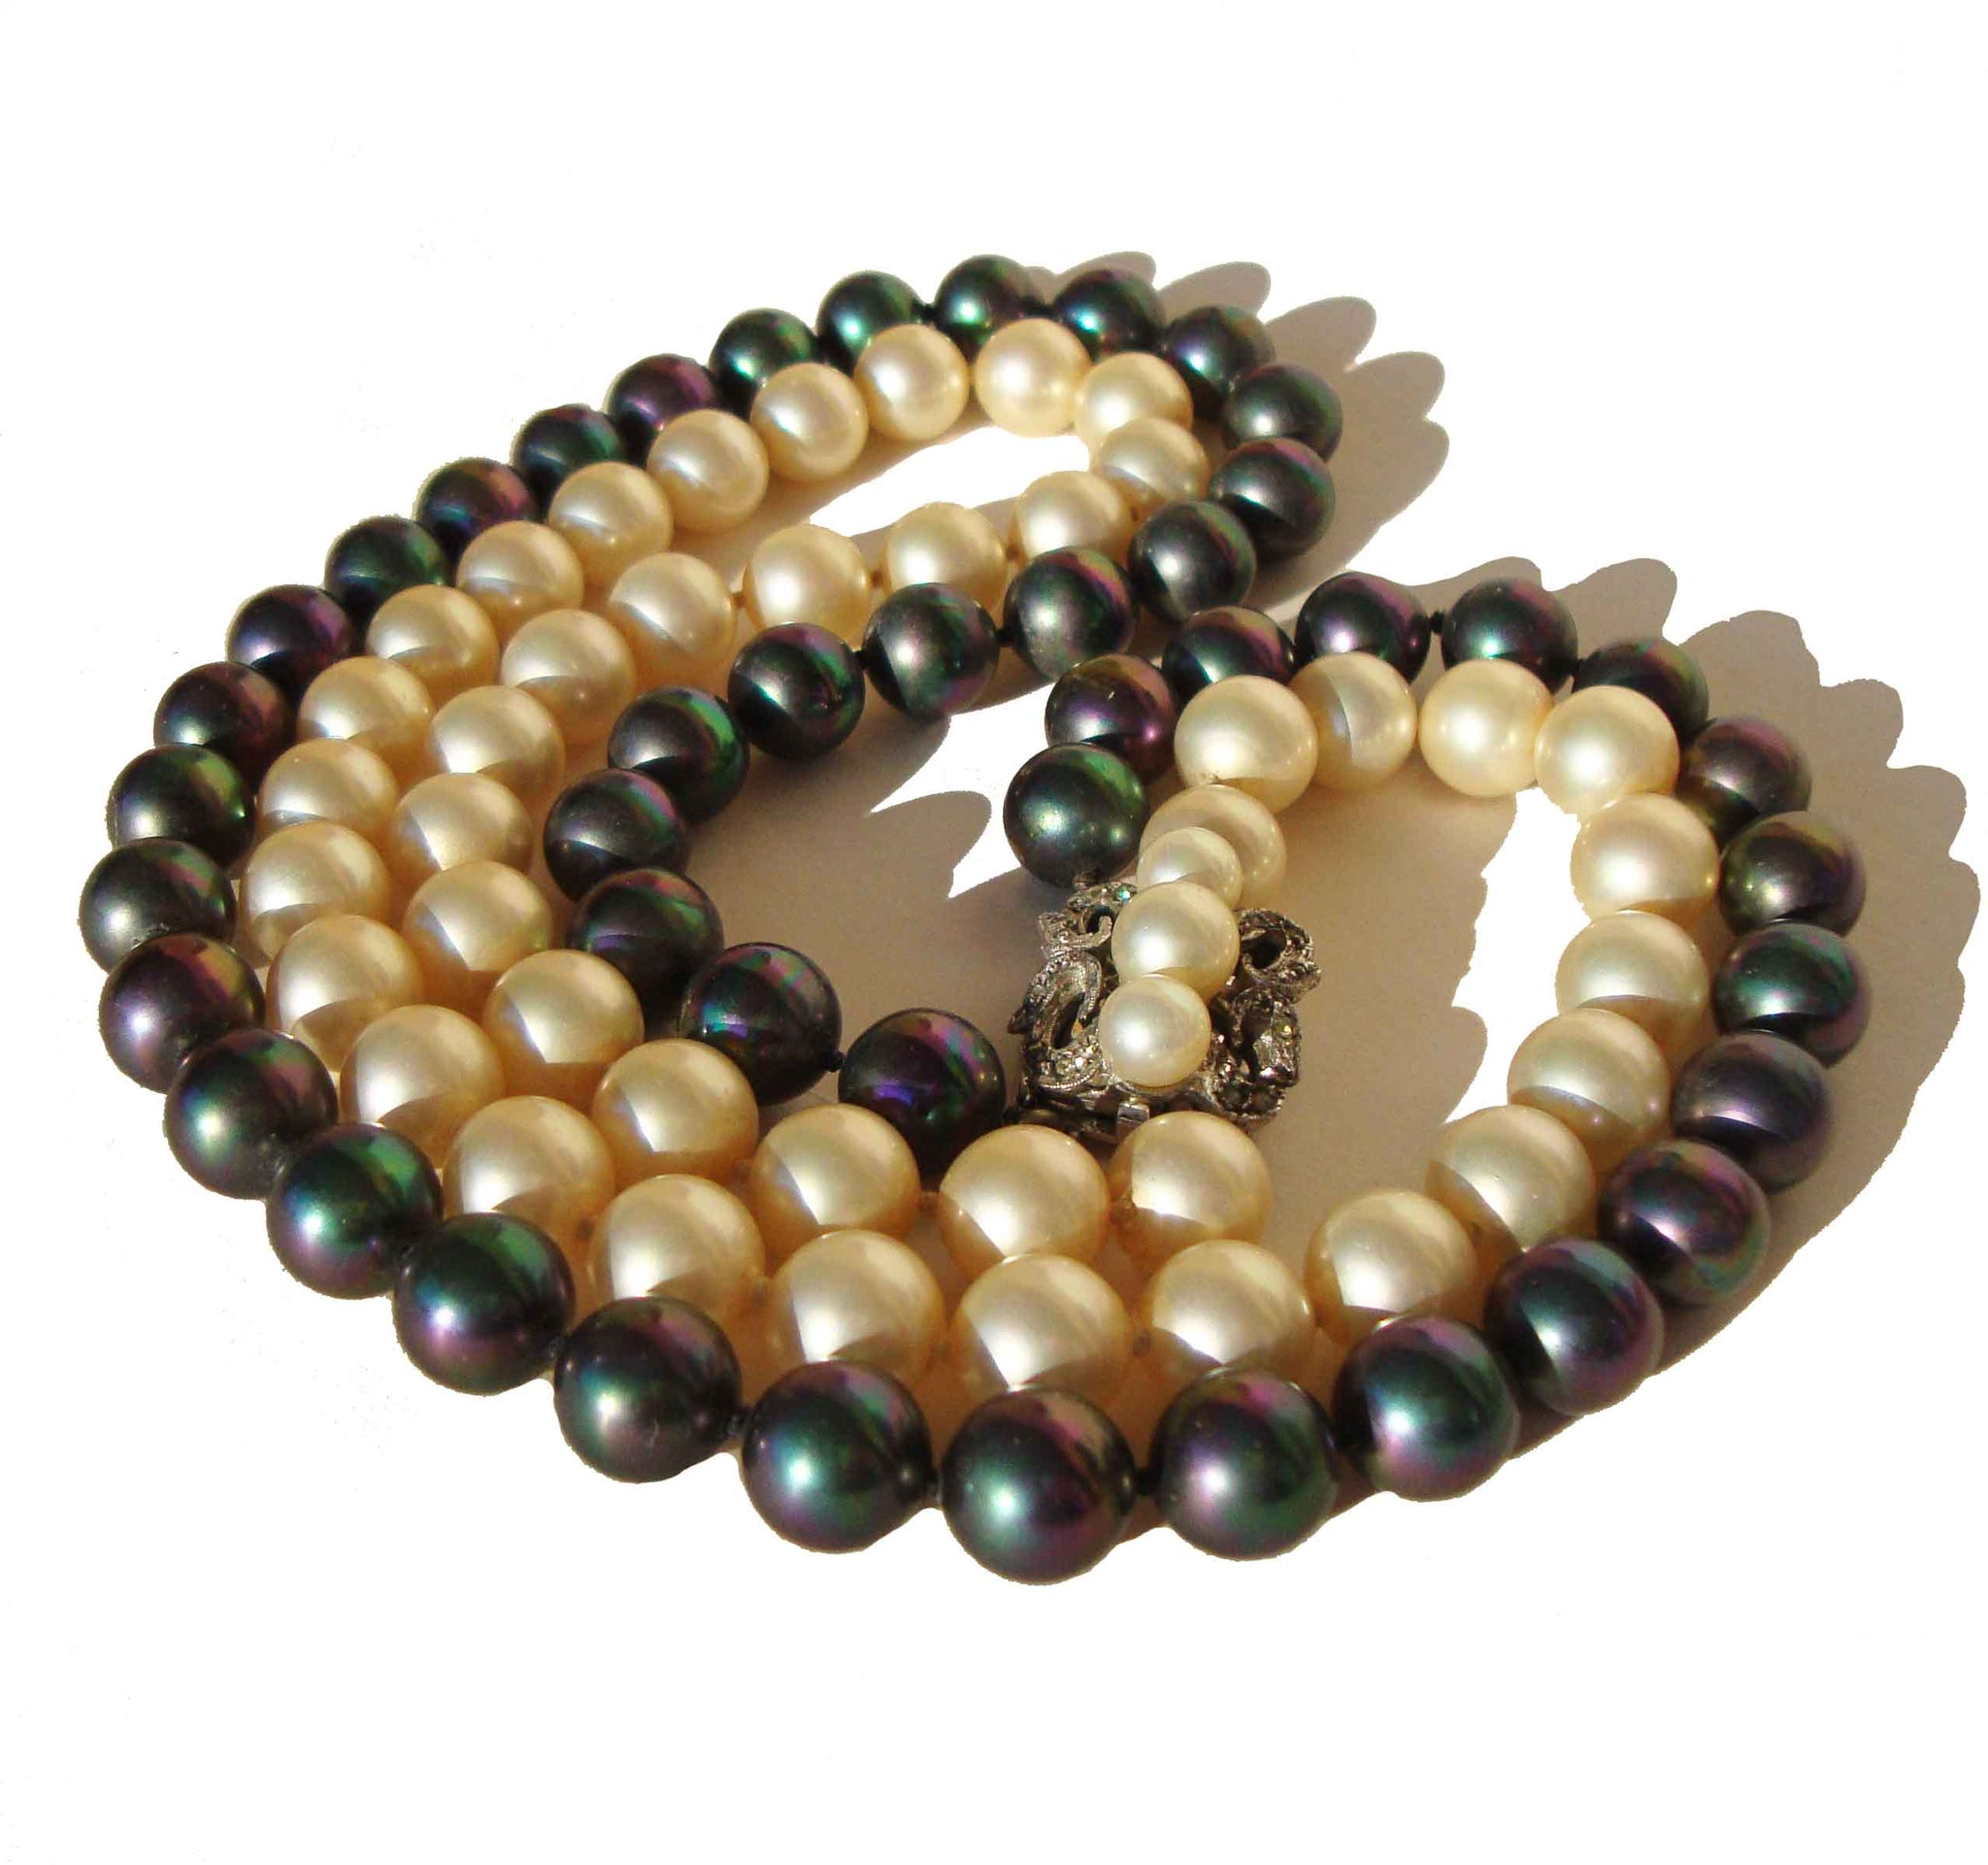 20abba9d035fe Vintage 50s Costume Pearl Necklace White & Black Double Strand Choker